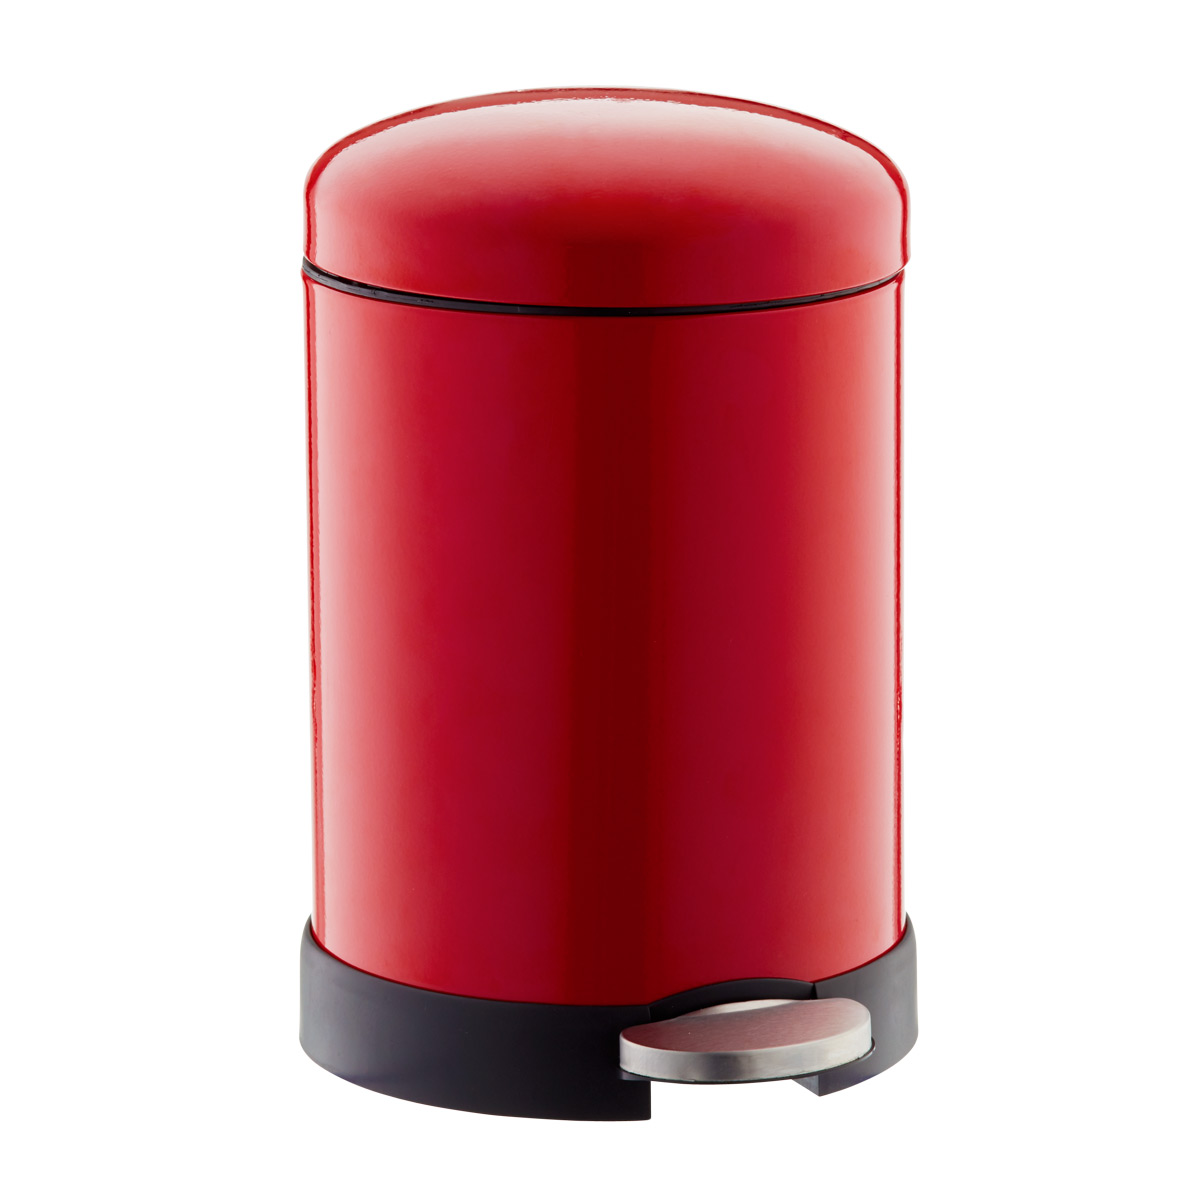 Exceptionnel Red 1.3 Gal. Glossy Round Retro Step Trash Can